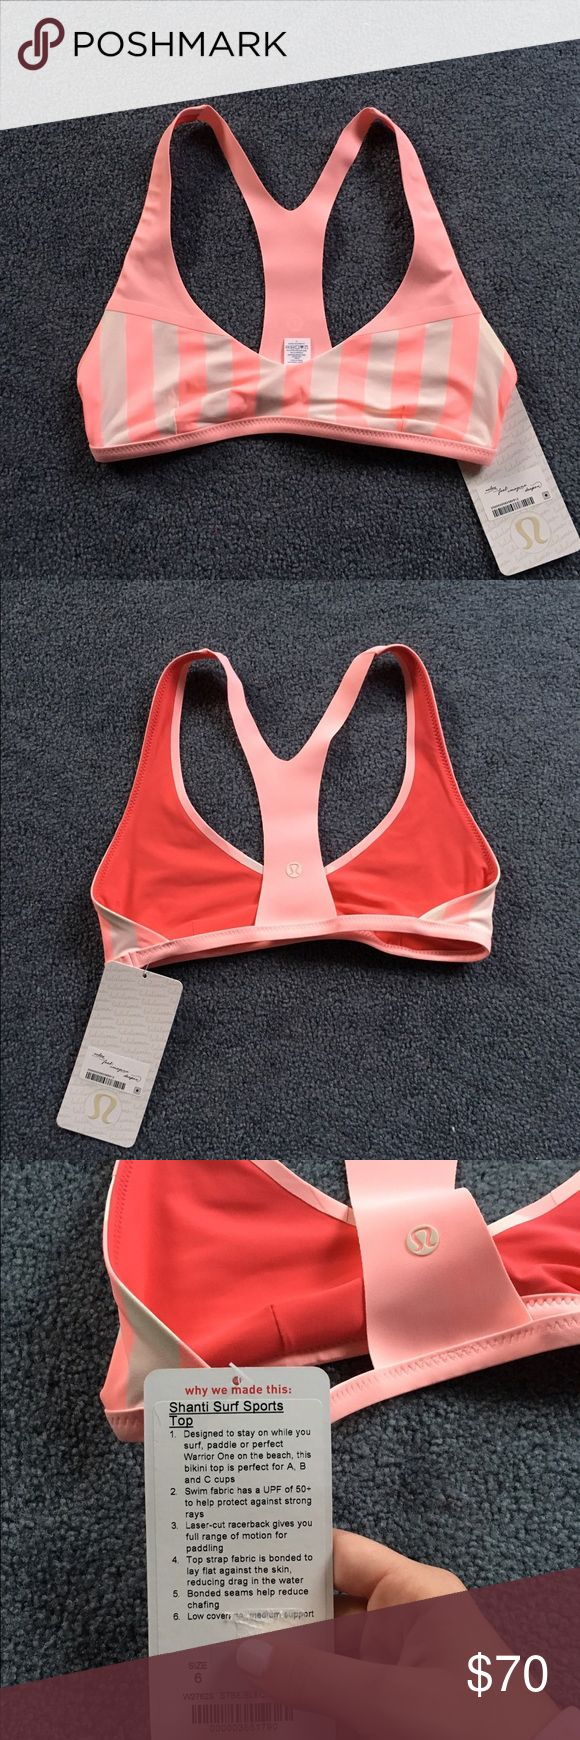 "Lululemon Shanti Surf bikini top NWT size 6 * RARE Lululemon ""Shanti Surf Sports Top"" bikini top size 6. new with tags. Sold out in stores & online  * Check out the rest of my closet for more Lululemon bikinis!  * Also listed for cheaper on my Ⓜ️ercari account lululemon athletica Swim Bikinis"